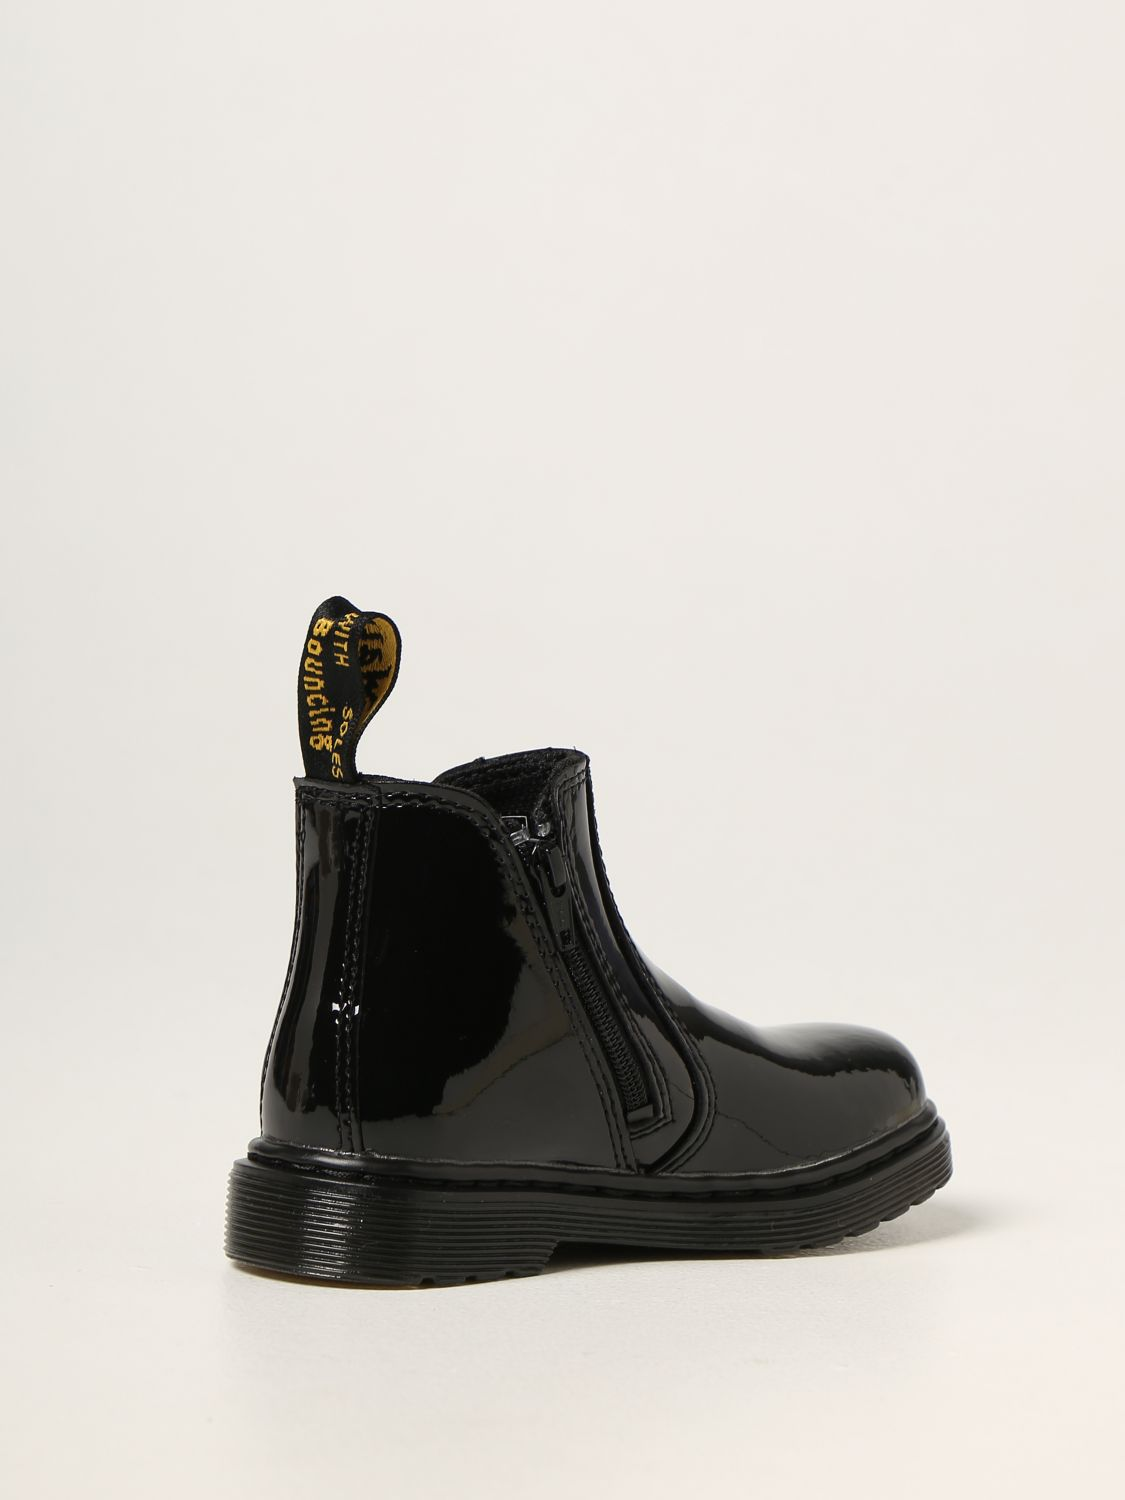 Shoes Dr. Martens: Dr. Martens Chelsea boots in patent leather black 3